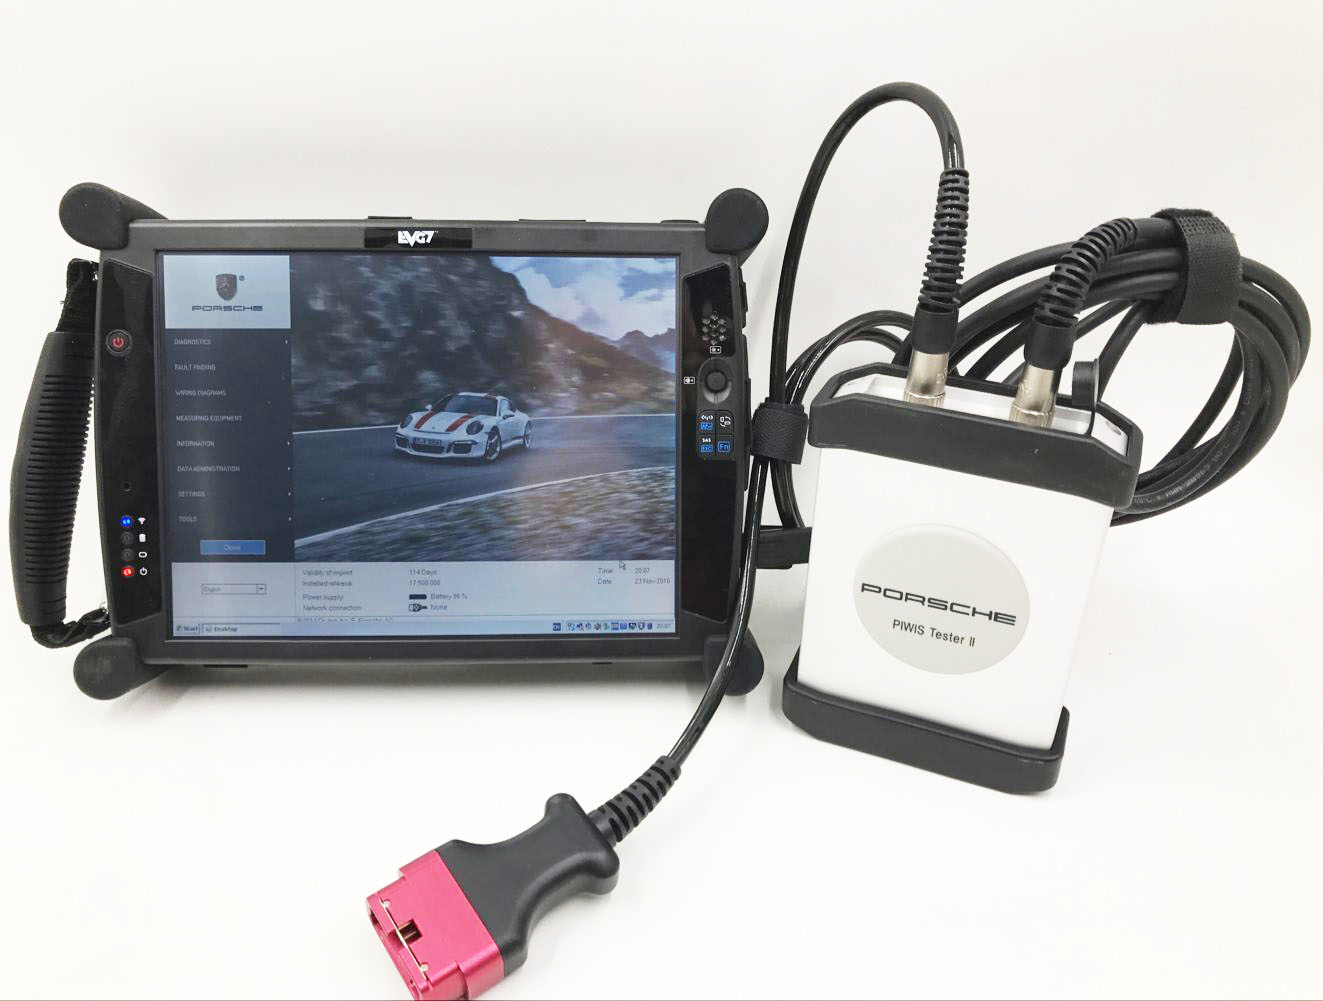 Supplier Piwis ii tester For Porsche piwis tester 2 with V18.10 Piwis Tester software installed on EVG7 Tablet pc ready to use